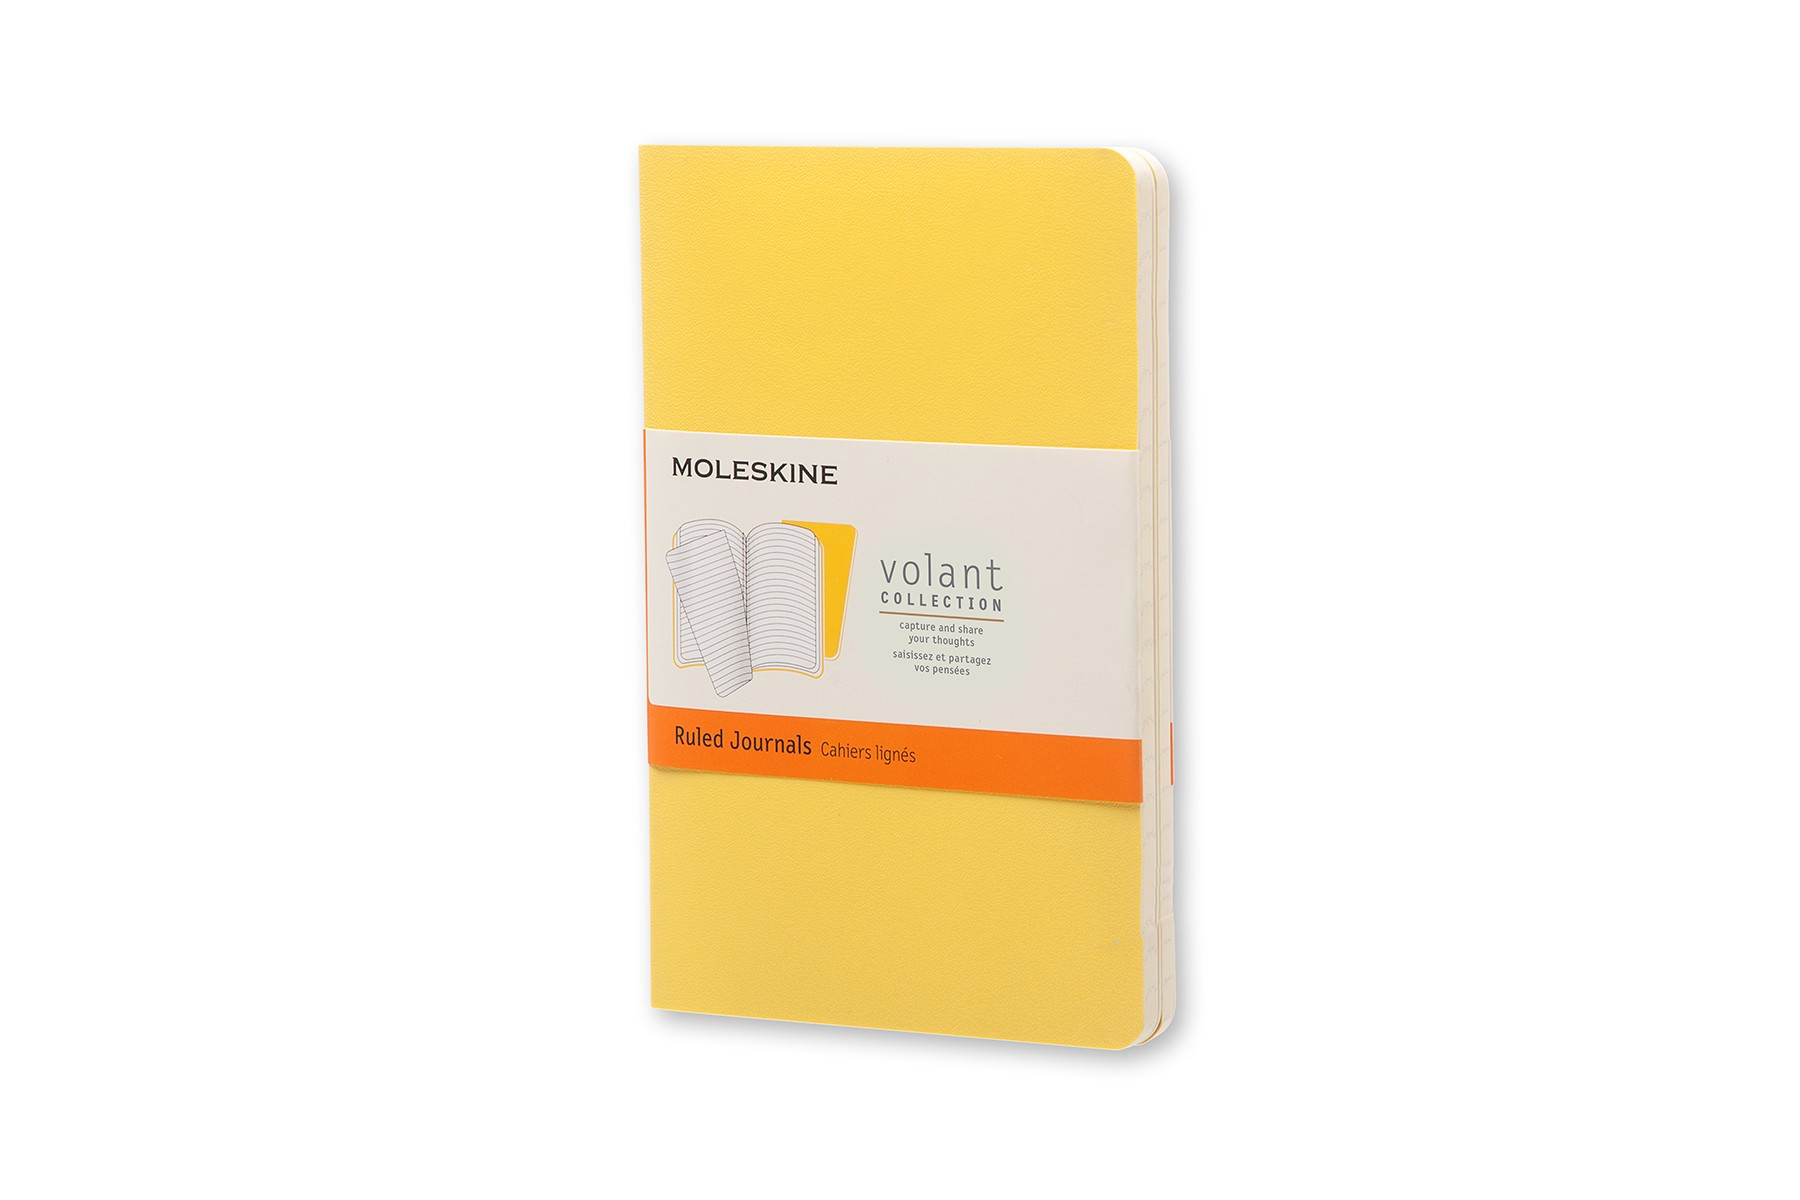 Moleskine Volant Journal Ruled Pocket Sunflower Yellow/Brass Yellow